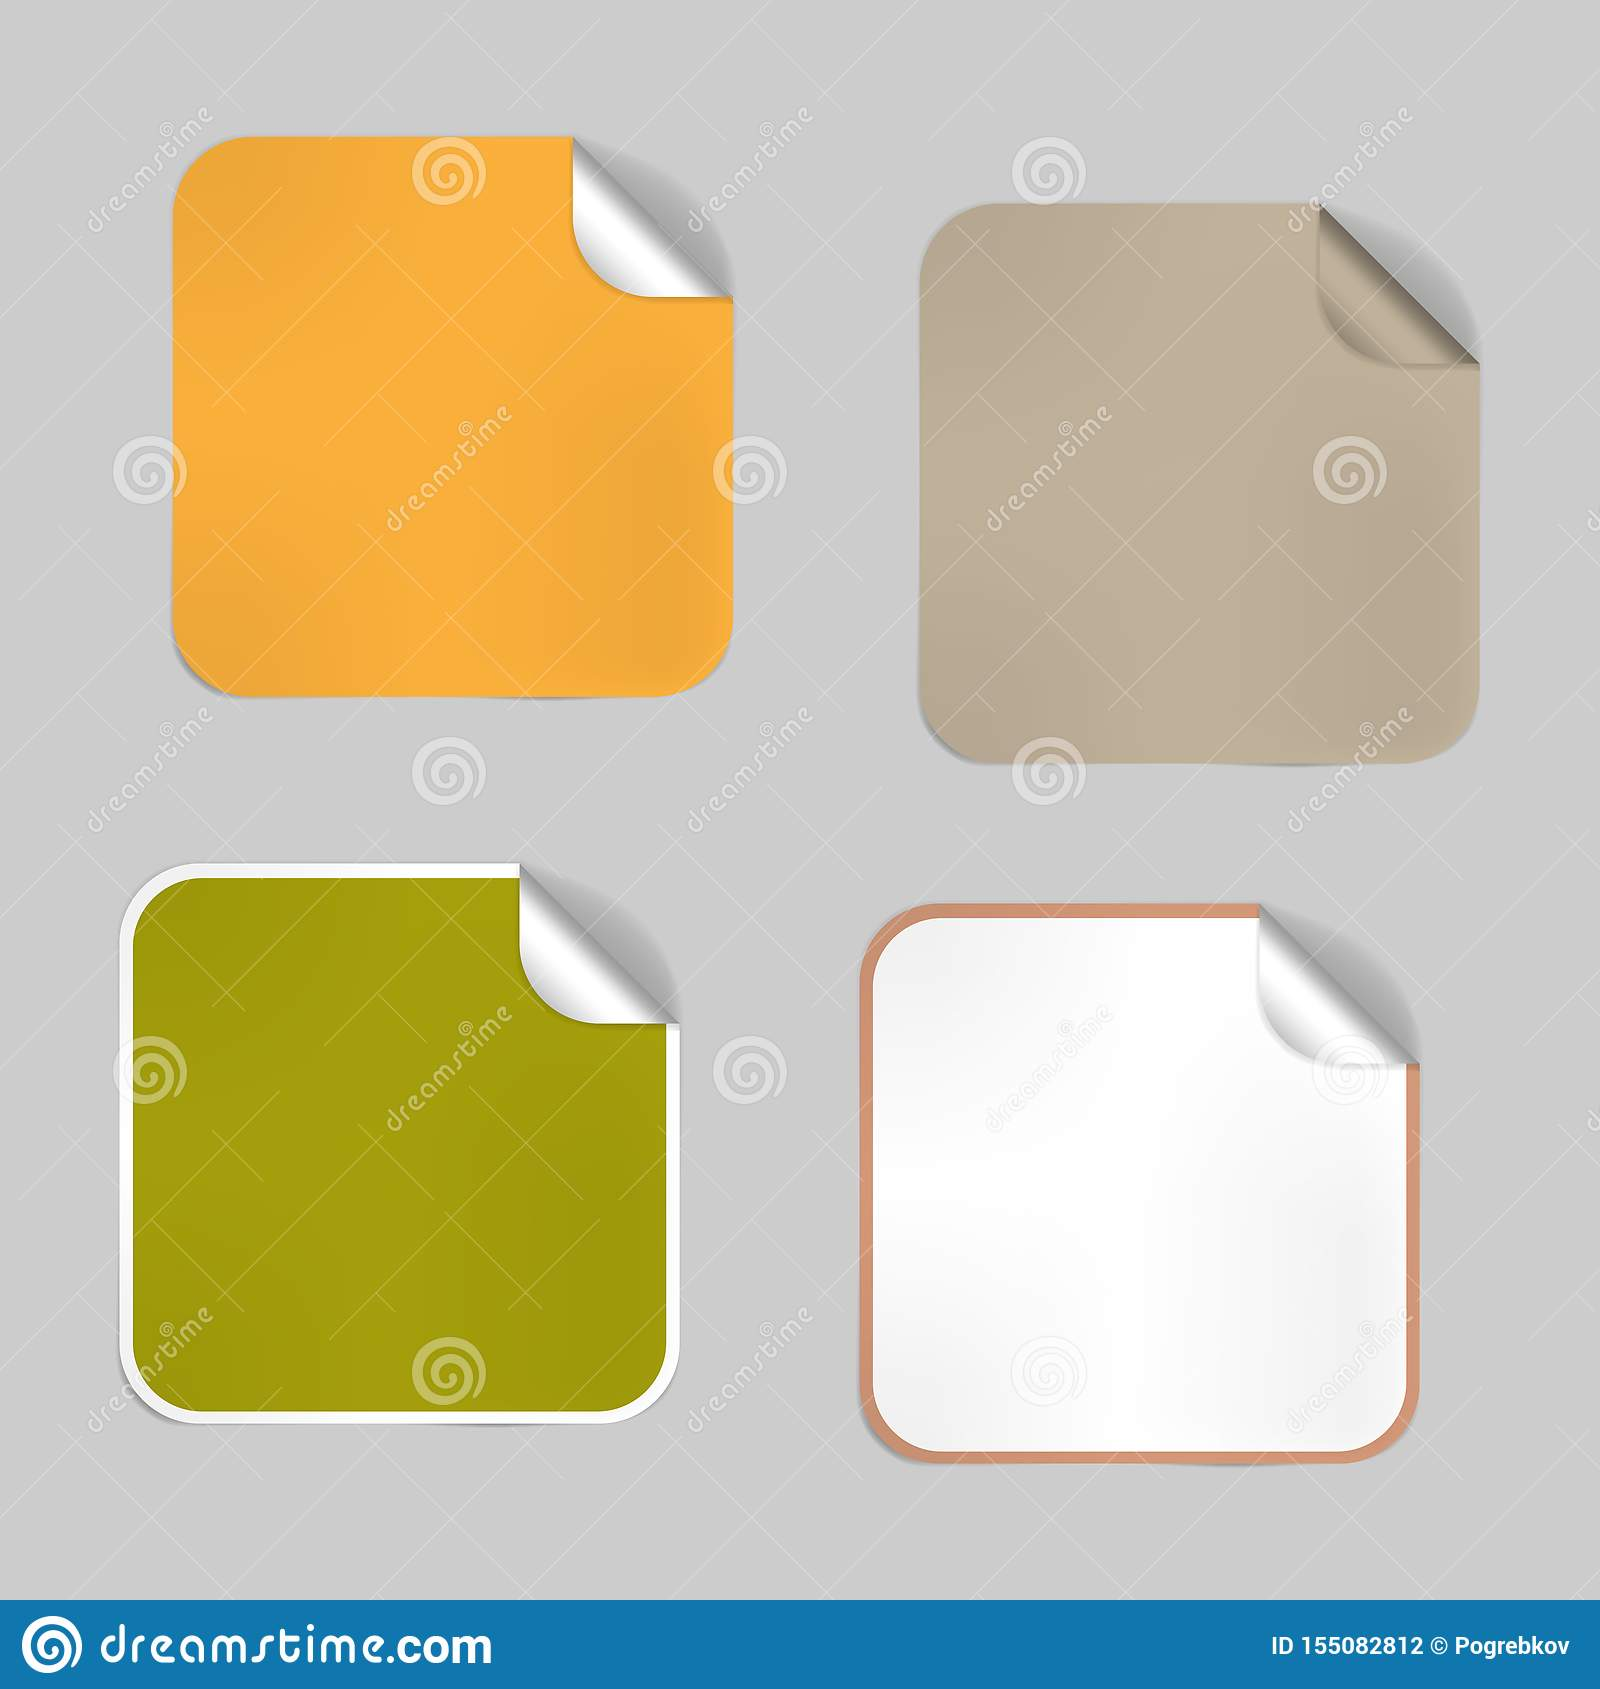 Set Of Square Blank Empty Stickers With Peeled Off Corner  Mockup  Aluminium Foil Lids  Adhesive